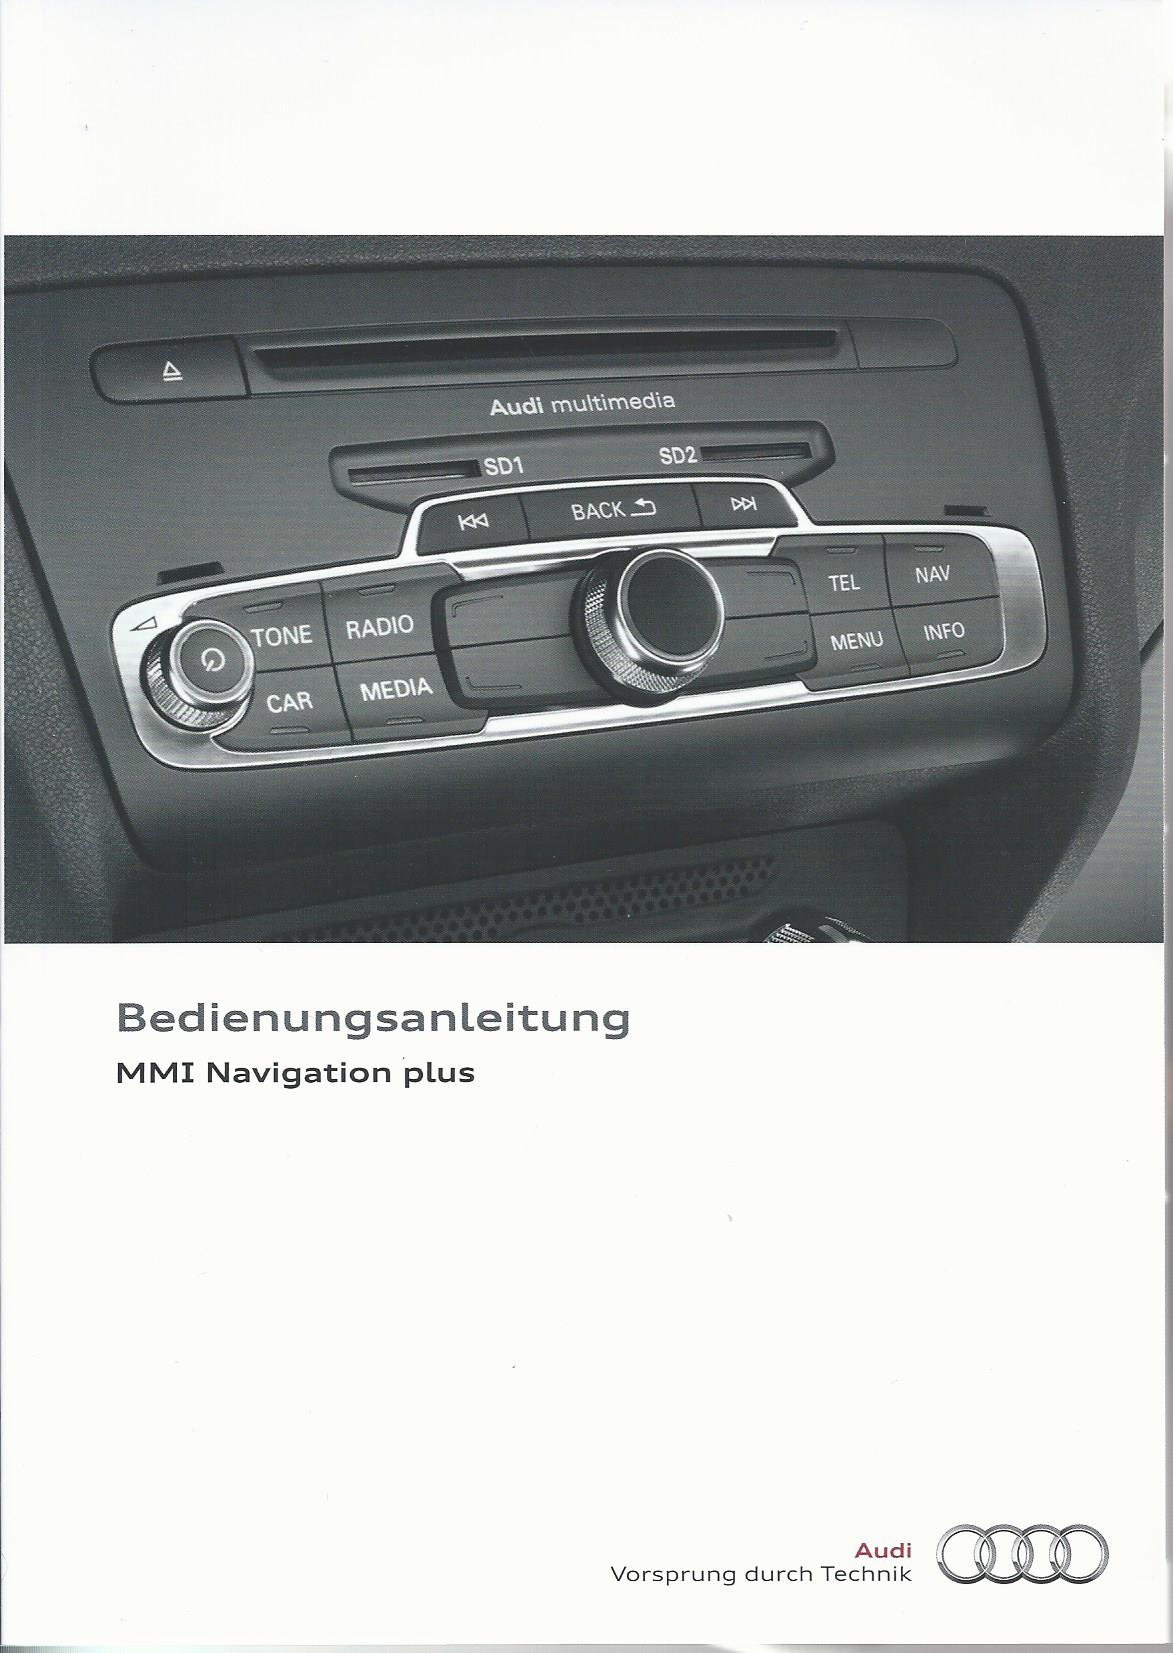 audi mmi navigation plus betriebsanleitung 2013 2014 bedienungsanleitung 1mh rn ebay. Black Bedroom Furniture Sets. Home Design Ideas